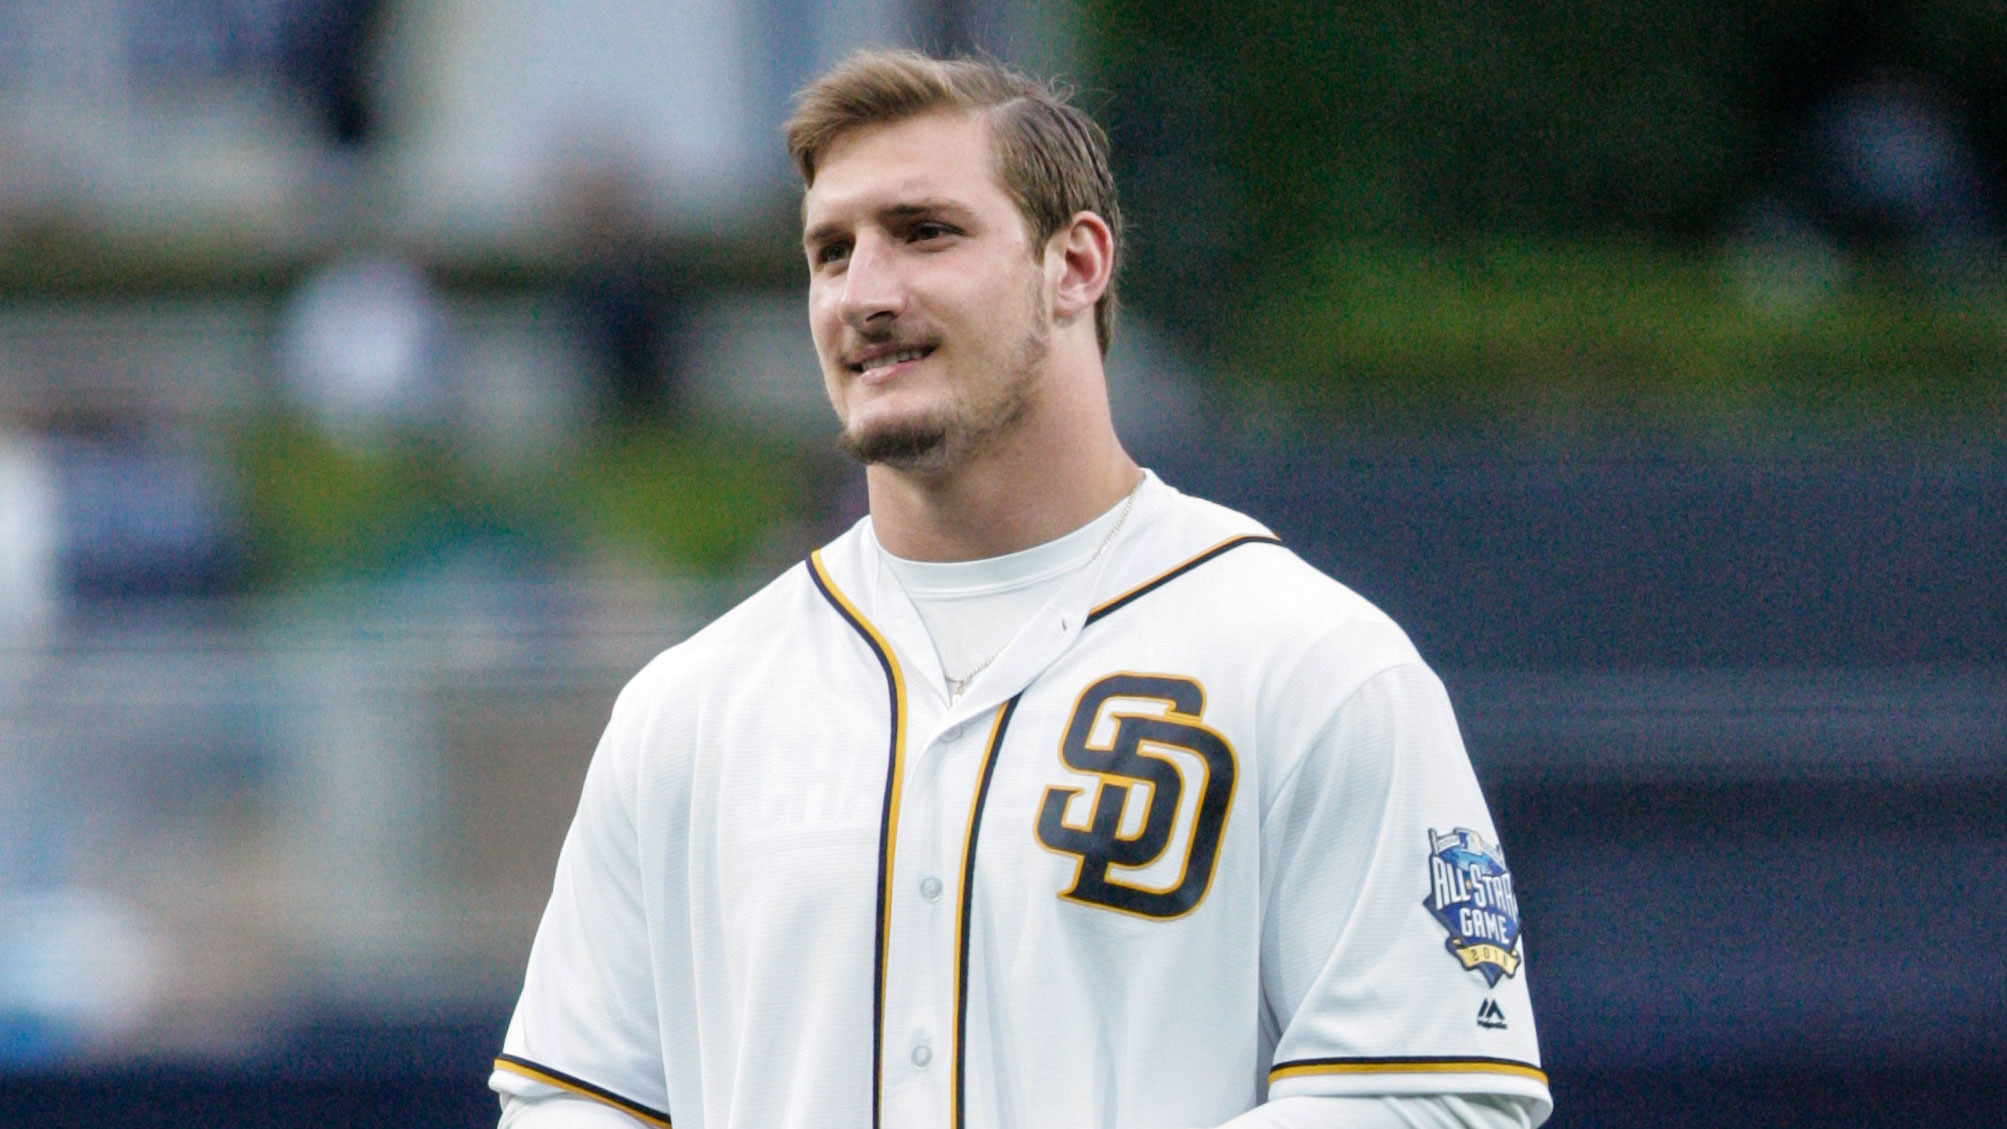 Joey Bosa Chargers rookie skips minicamp over contract